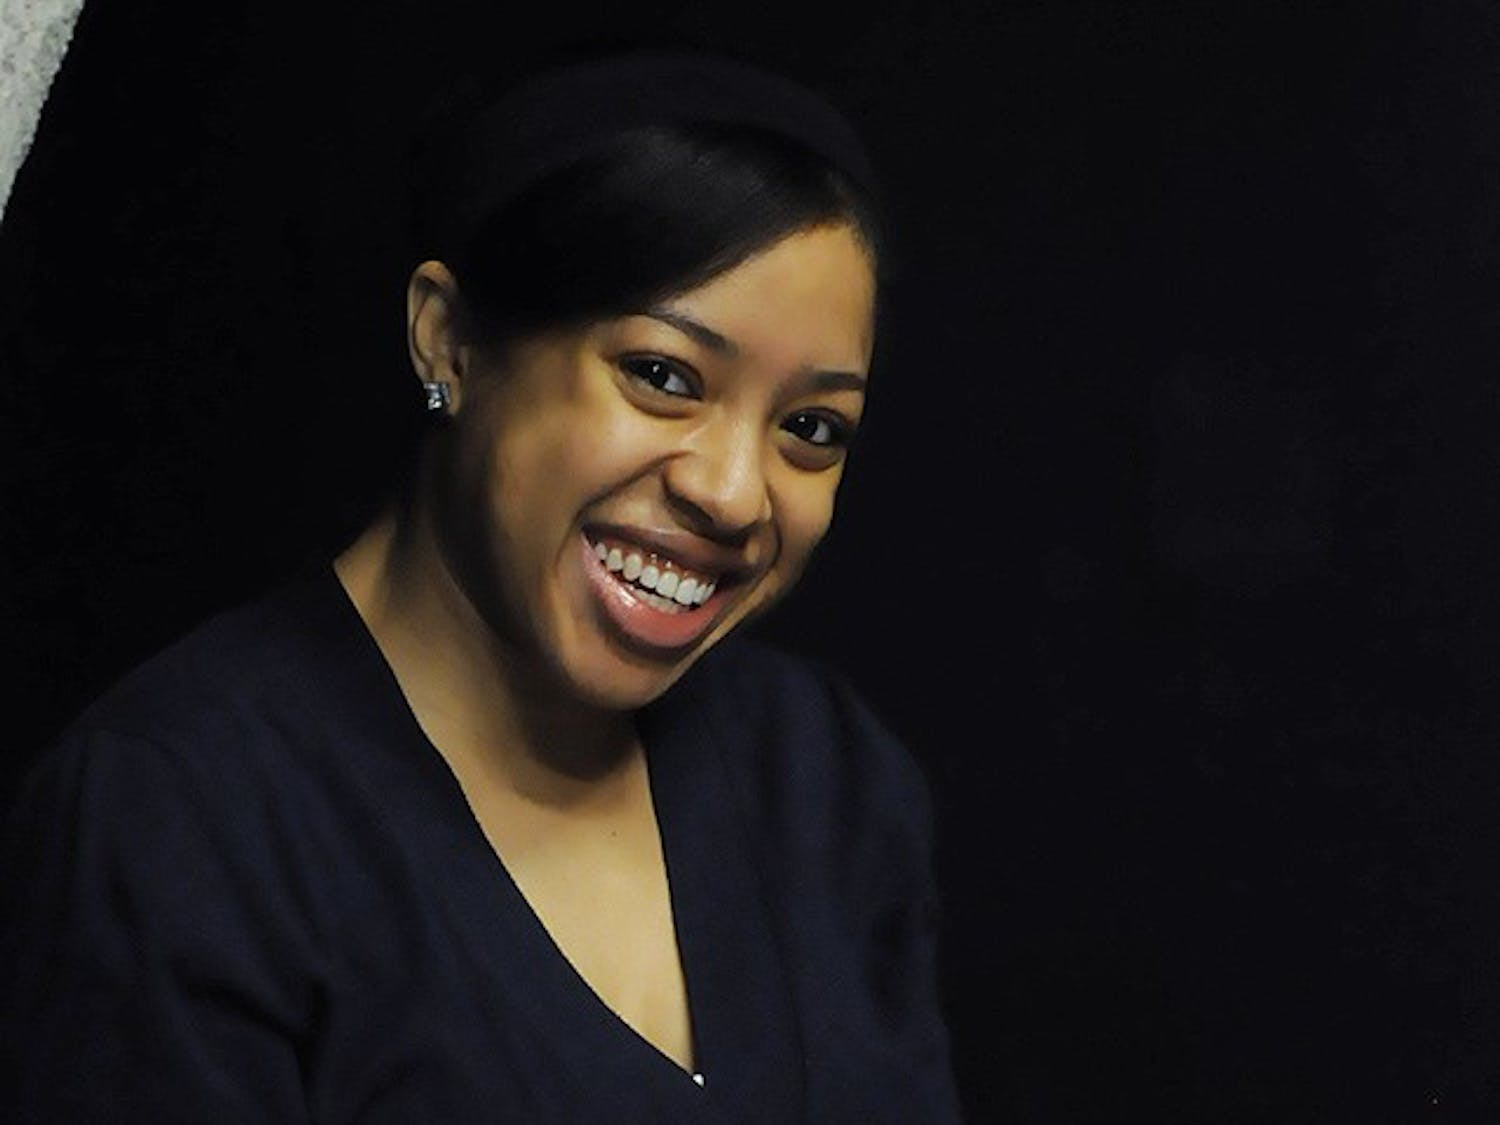 """Shani Watson is making history during black history month: she is the first female African American undergraduate student to adapt, write, direct and produce a play at UNC. The senior communication and performance studies major, found inspiration for the play's identity theme from a Douglas Sirk quote: """"The mirror is the imitation of life. What is interesting about a mirror is that it does not show yourself as you are, it shows you your own opposite."""" Shani Watson is making history during black history month: she is the first female African American undergraduate student to adapt, write, direct and produce a play at UNC. The senior communication and performance studies major, found inspiration for the play's identity theme from a Douglas Sirk quote: """"The mirror is the imitation of life. What is interesting about a mirror is that it does not show yourself as you are, it shows you your own opposite."""" Shani Watson is making history during black history month: she is the first female African American undergraduate student to adapt, write, direct and produce a play at UNC. The senior communication and performance studies major, found inspiration for the play's identity theme from a Douglas Sirk quote: """"The mirror is the imitation of life. What is interesting about a mirror is that it does not show yourself as you are, it shows you your own opposite."""""""